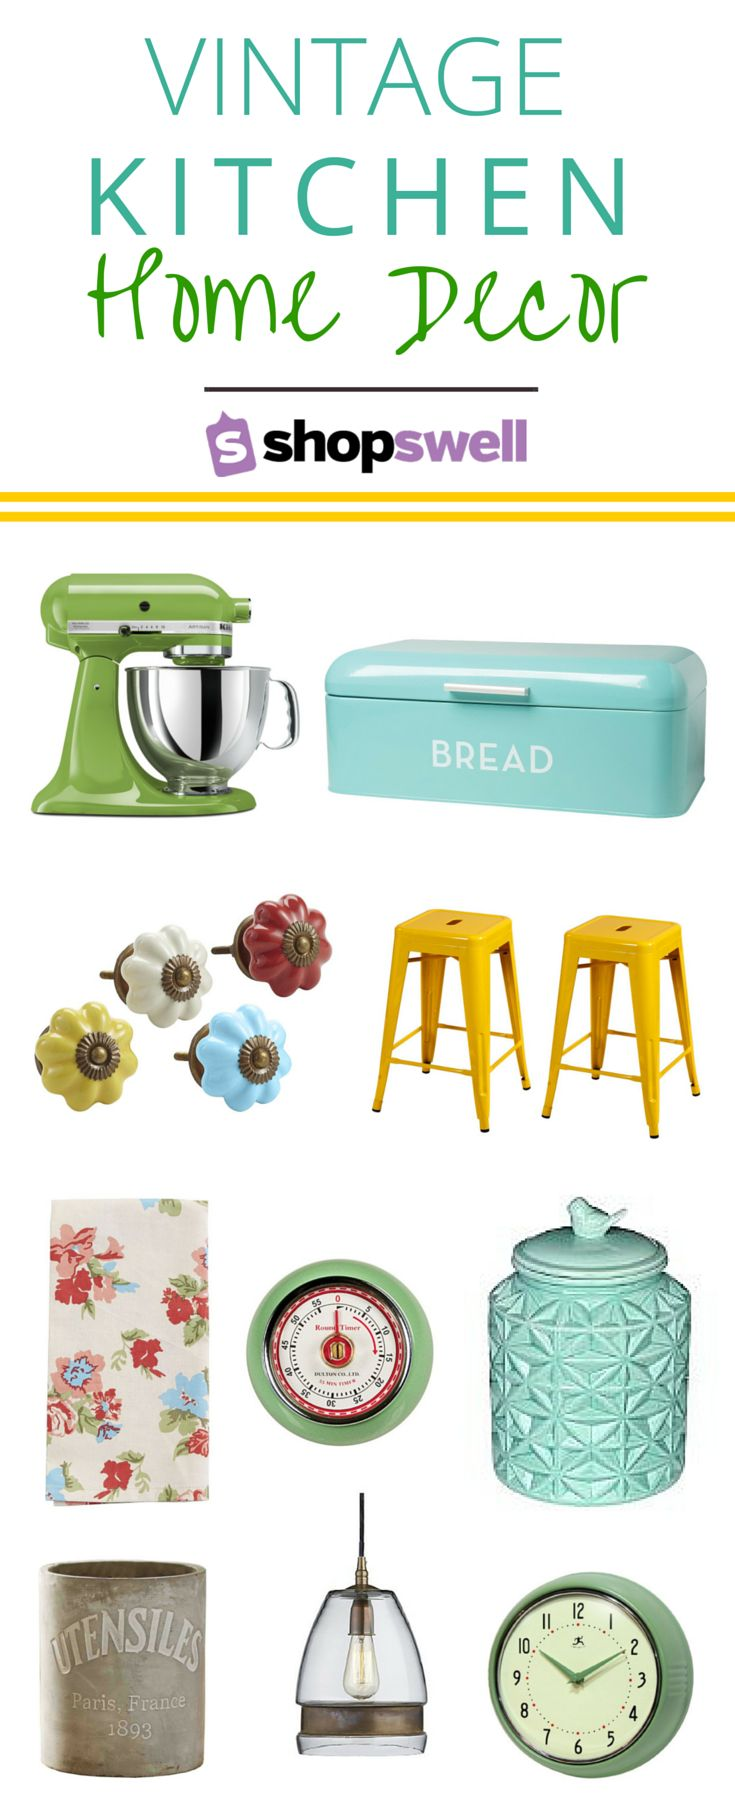 Vintage Kitchen for your home decorating inspiration.